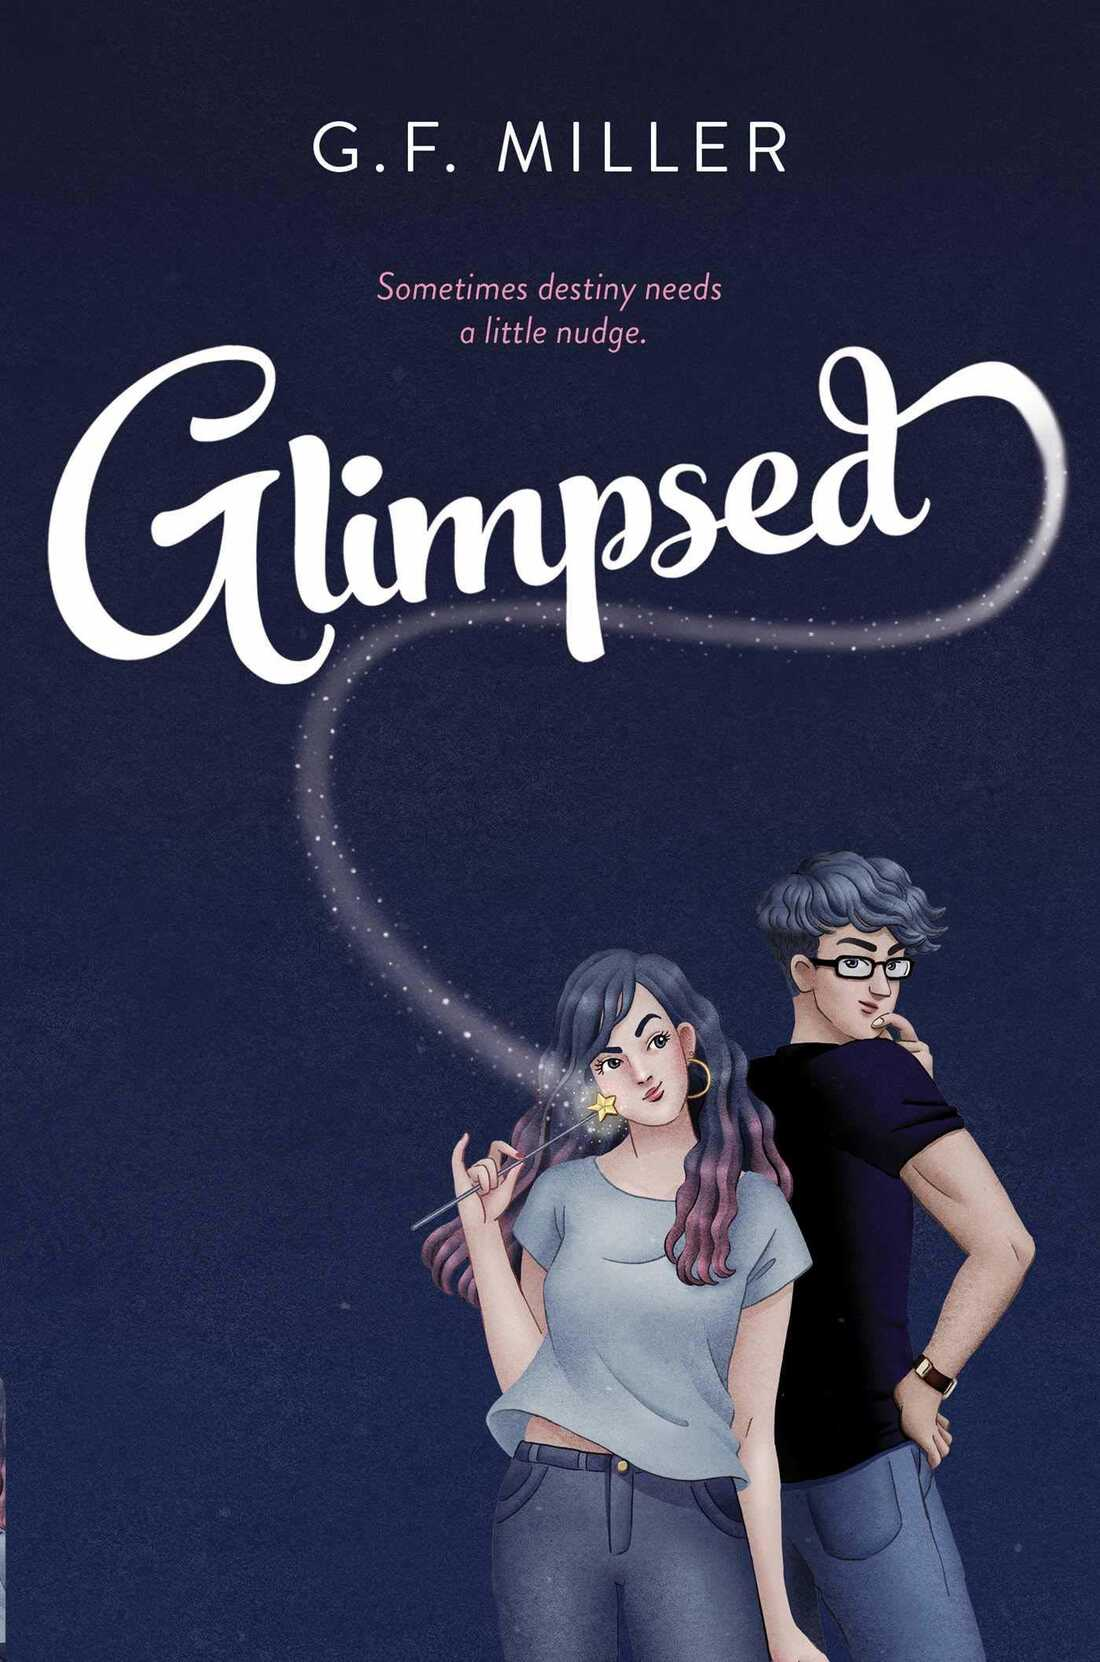 Glimpsed, by G.F. Miller